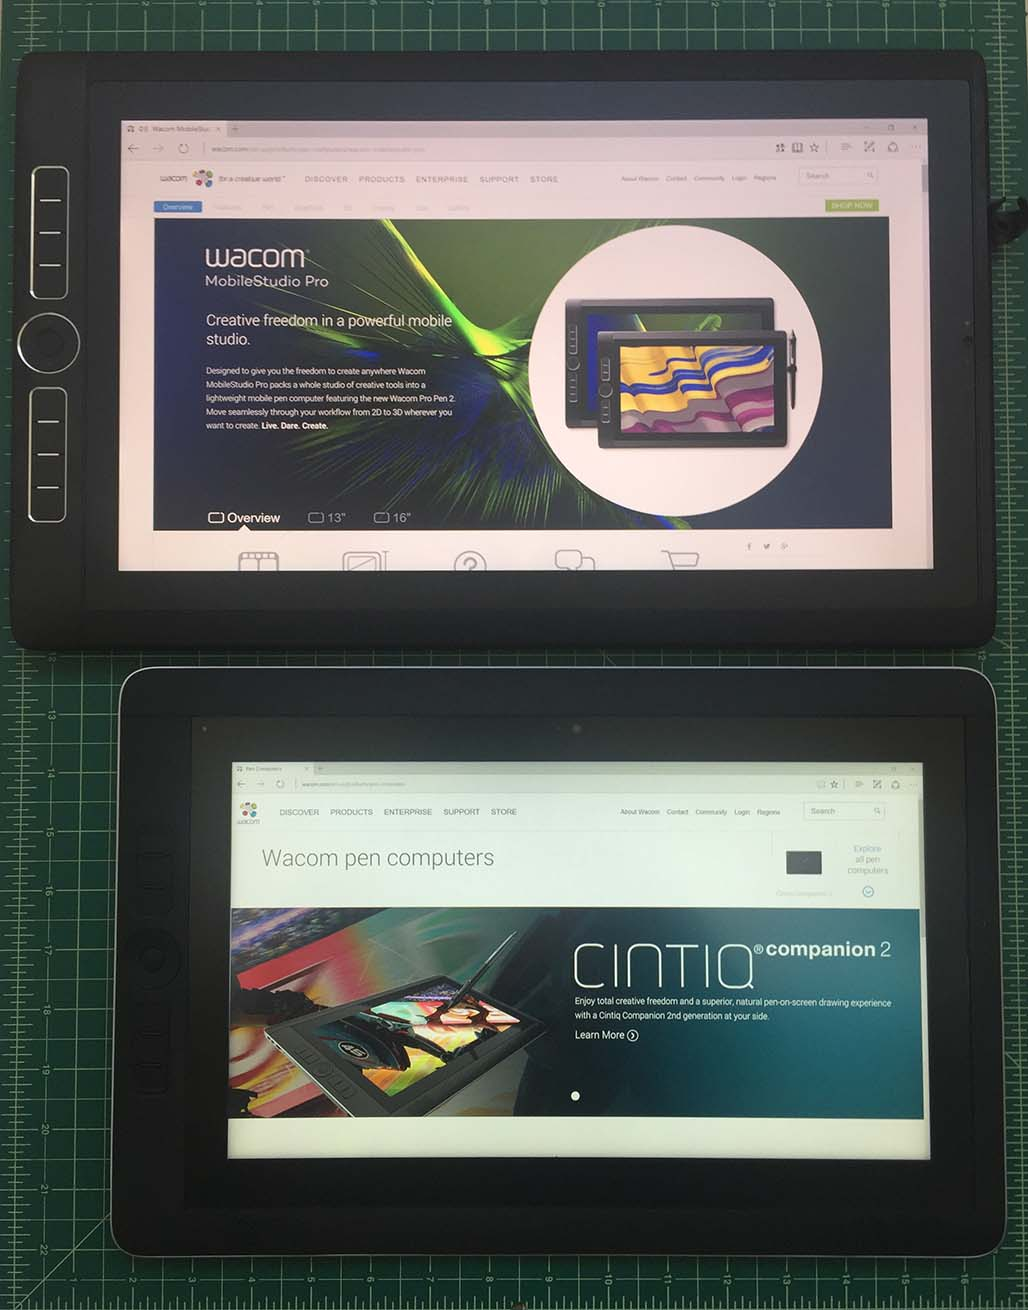 The MobileStudio Pro 16 (above top) is not dramatically larger than the Cintiq Companion 2, but it weighs 1.1 lbs. more.